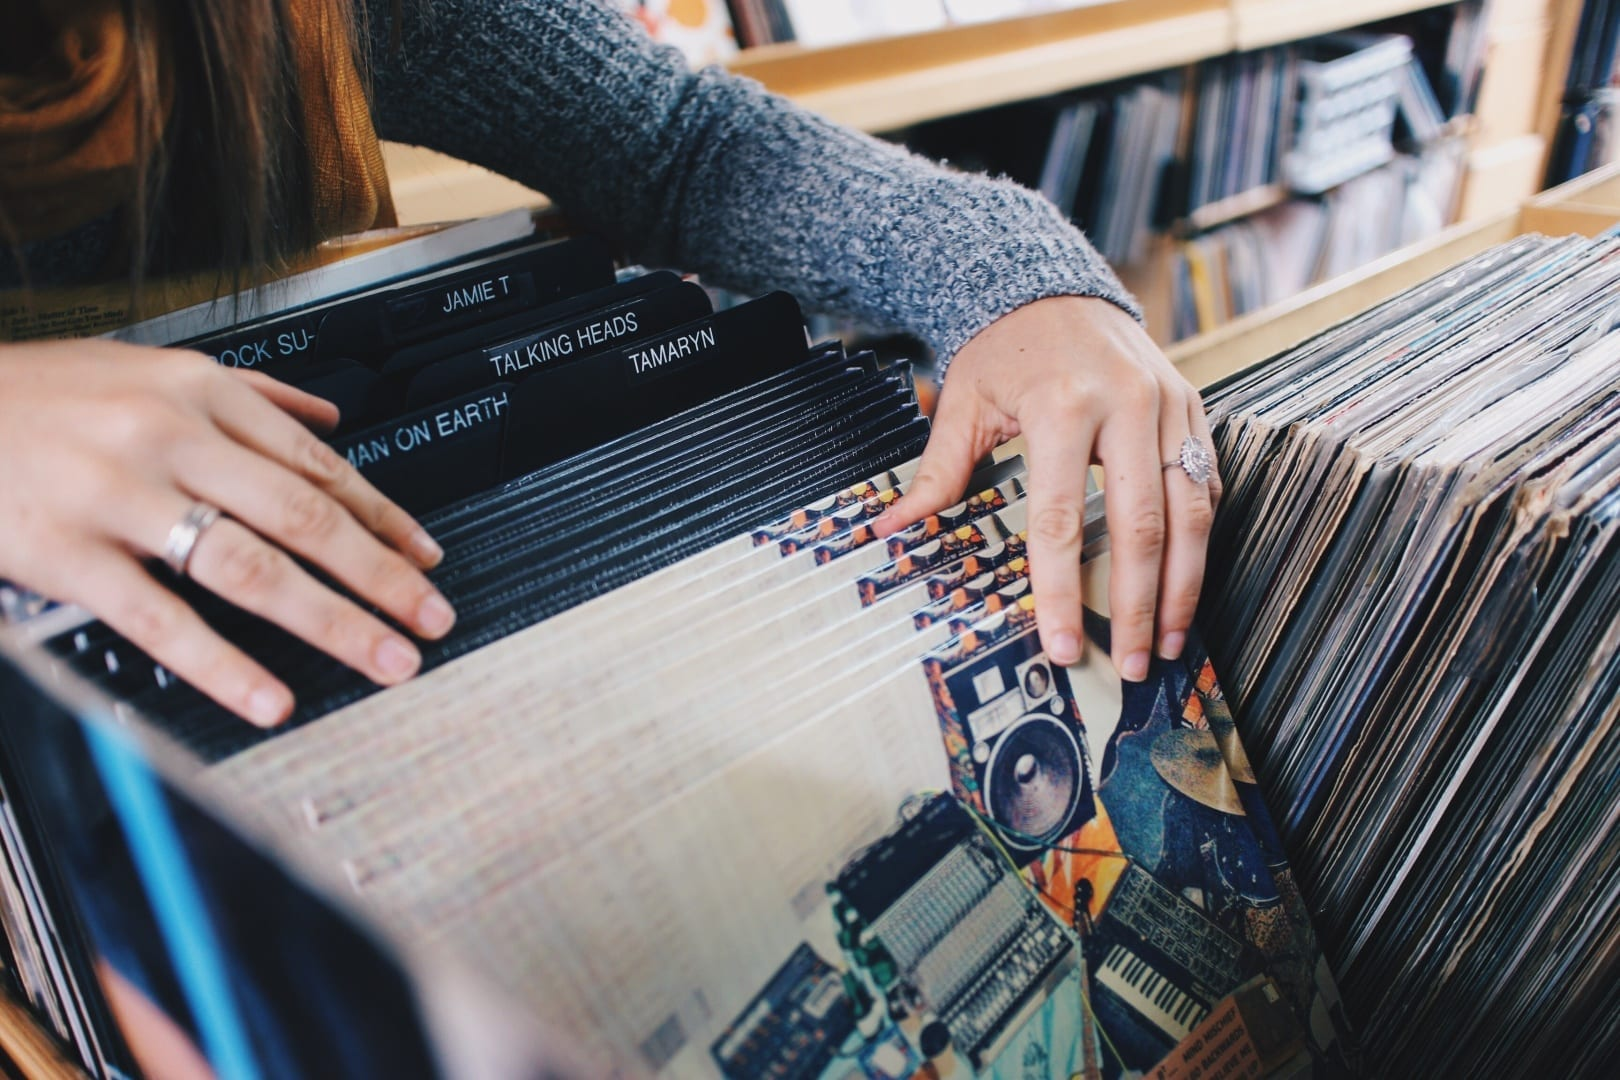 Looking to start a record collection? Here are some tips to get you started!